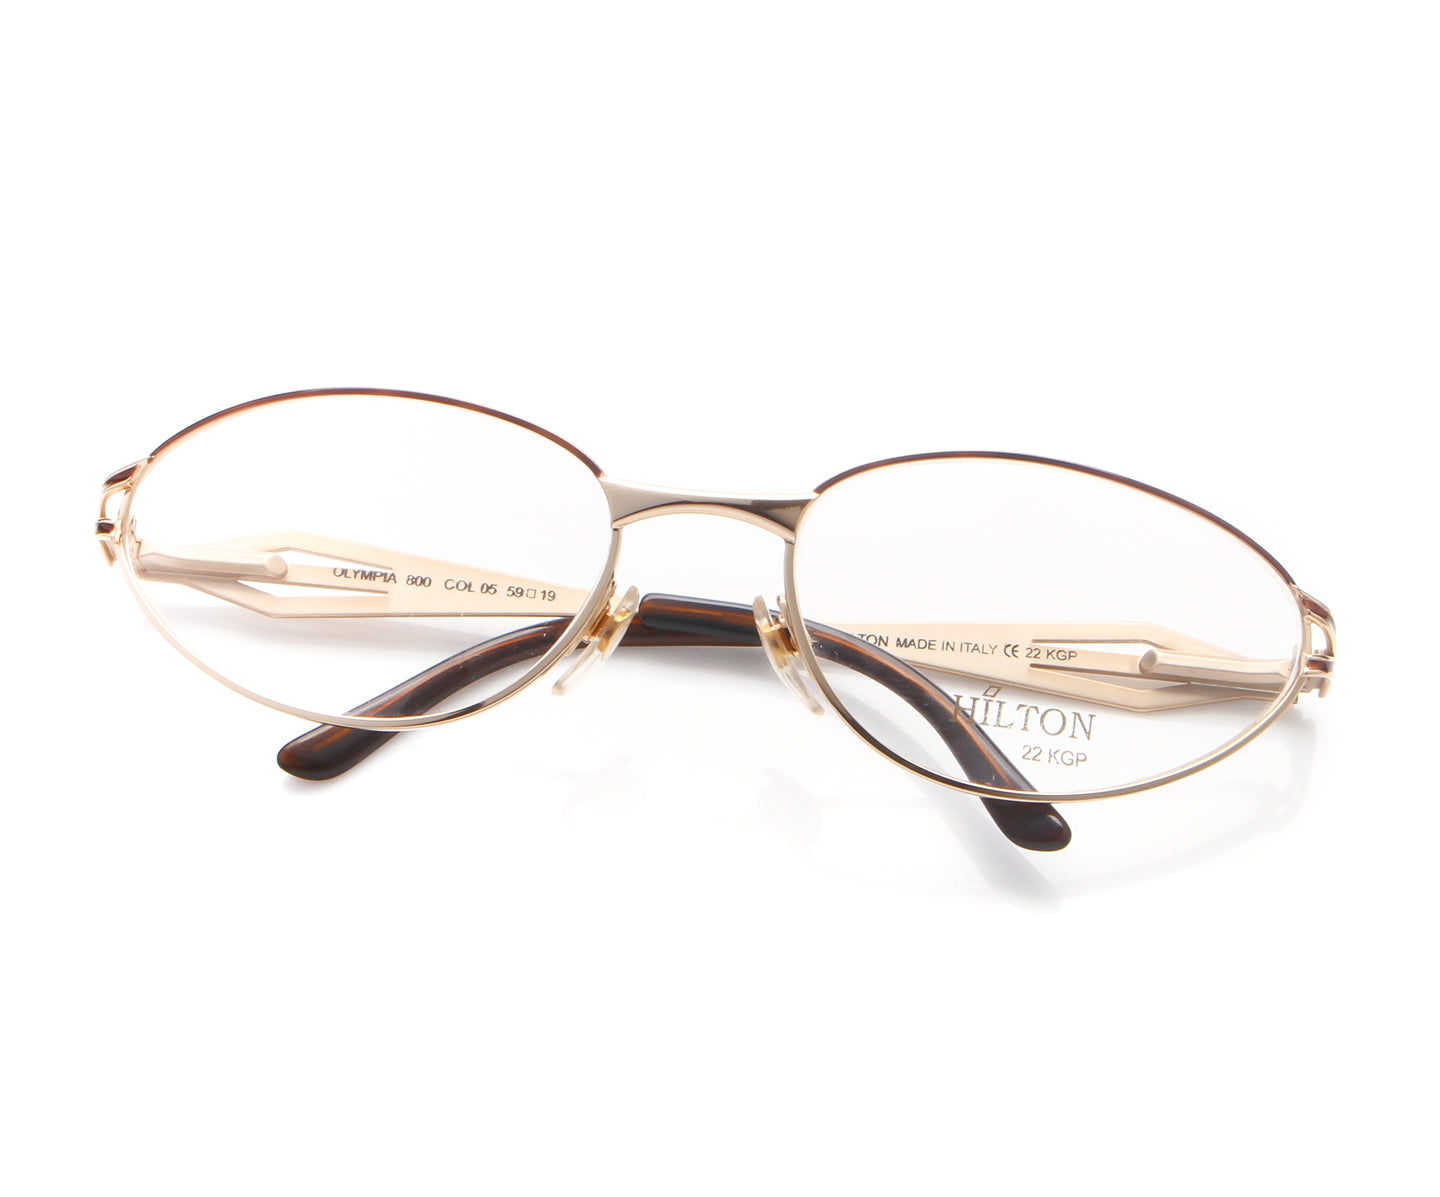 Vintage Hilton Olympia 800 05 22 KGP Thumbnail, Hilton , glasses frames, eyeglasses online, eyeglass frames, mens glasses, womens glasses, buy glasses online, designer eyeglasses, vintage sunglasses, retro sunglasses, vintage glasses, sunglass, eyeglass, glasses, lens, vintage frames company, vf